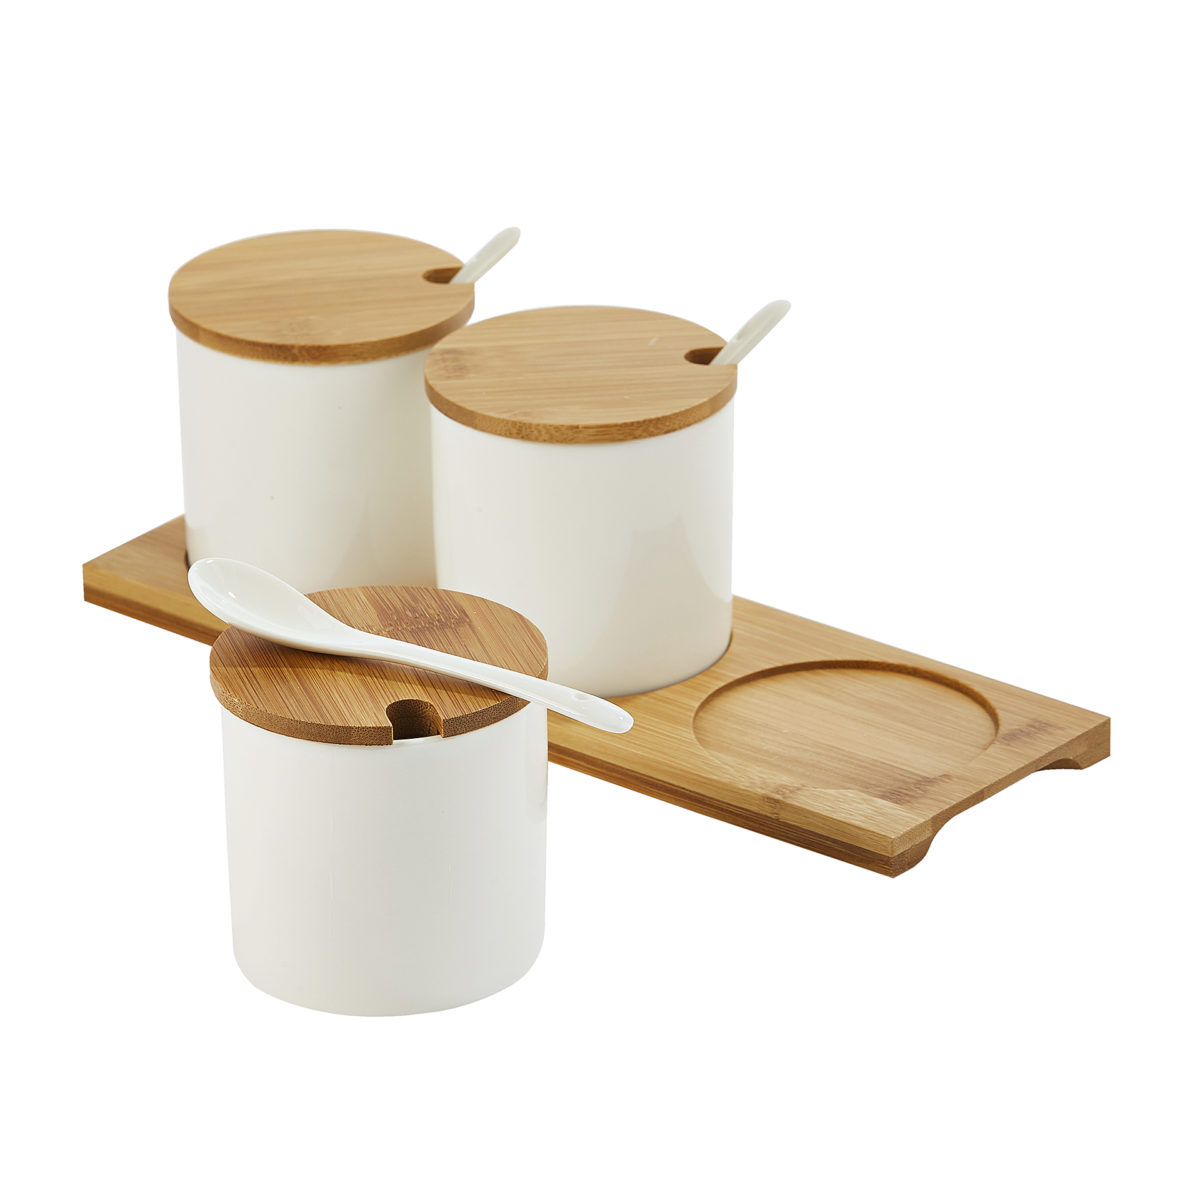 Ceramic Containers with Wooden Lids 2